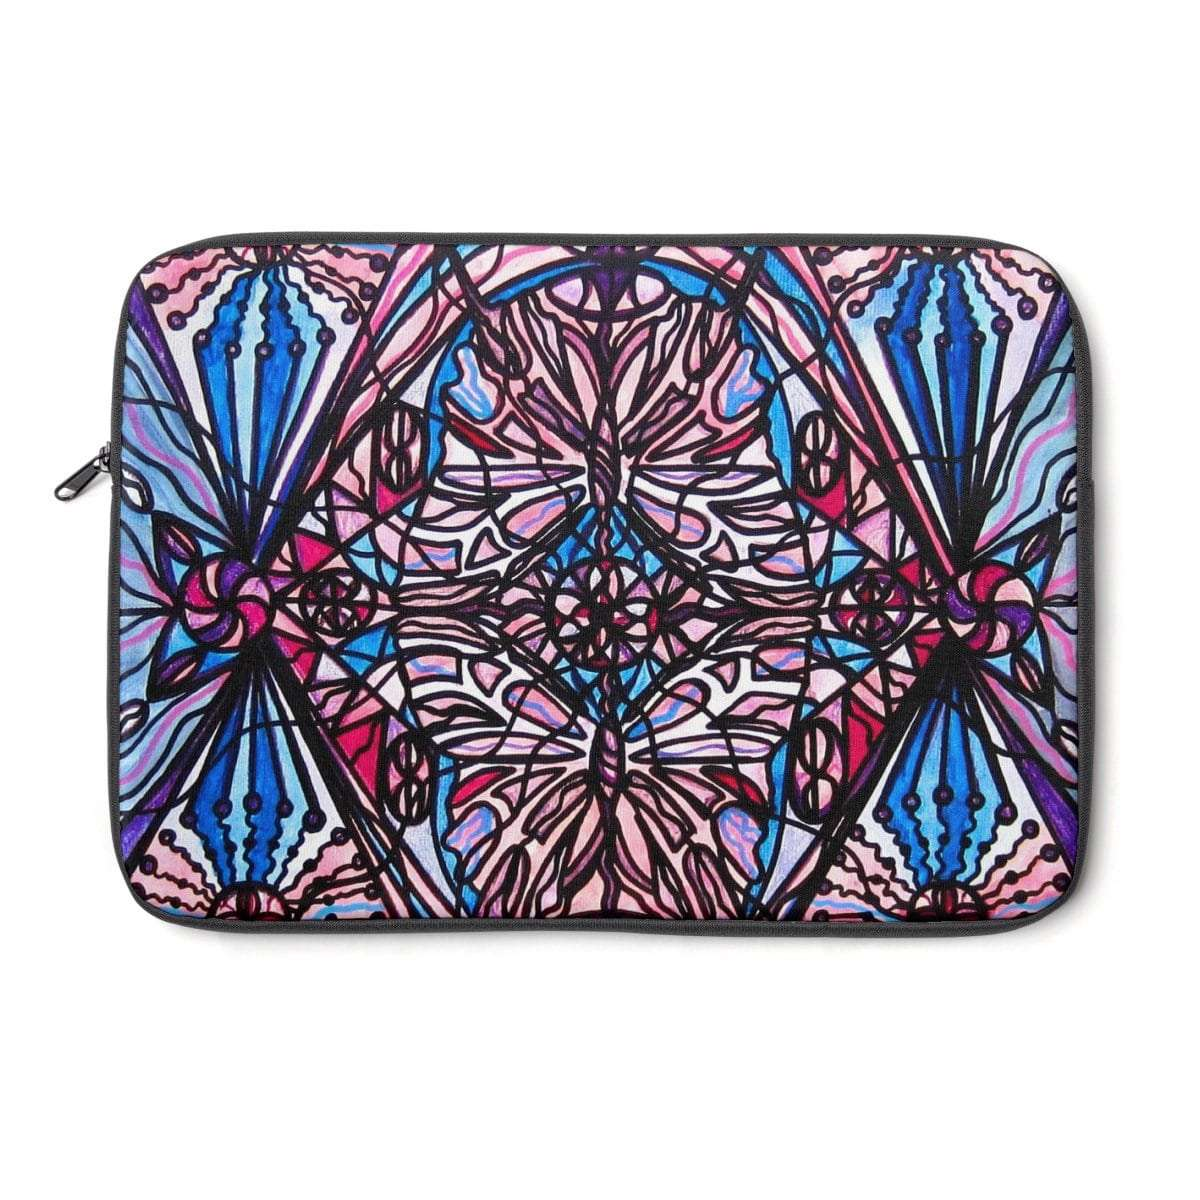 Conceive - Laptop Sleeve